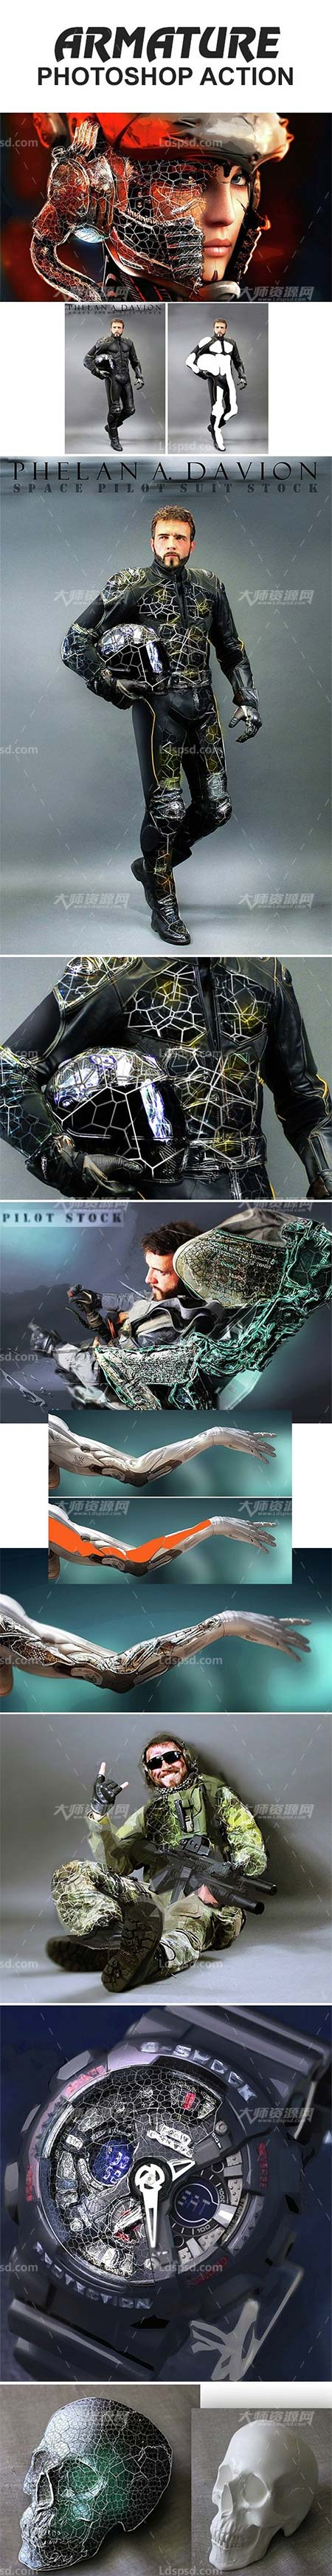 Armature Photoshop Action,极品PS动作-铁甲电枢